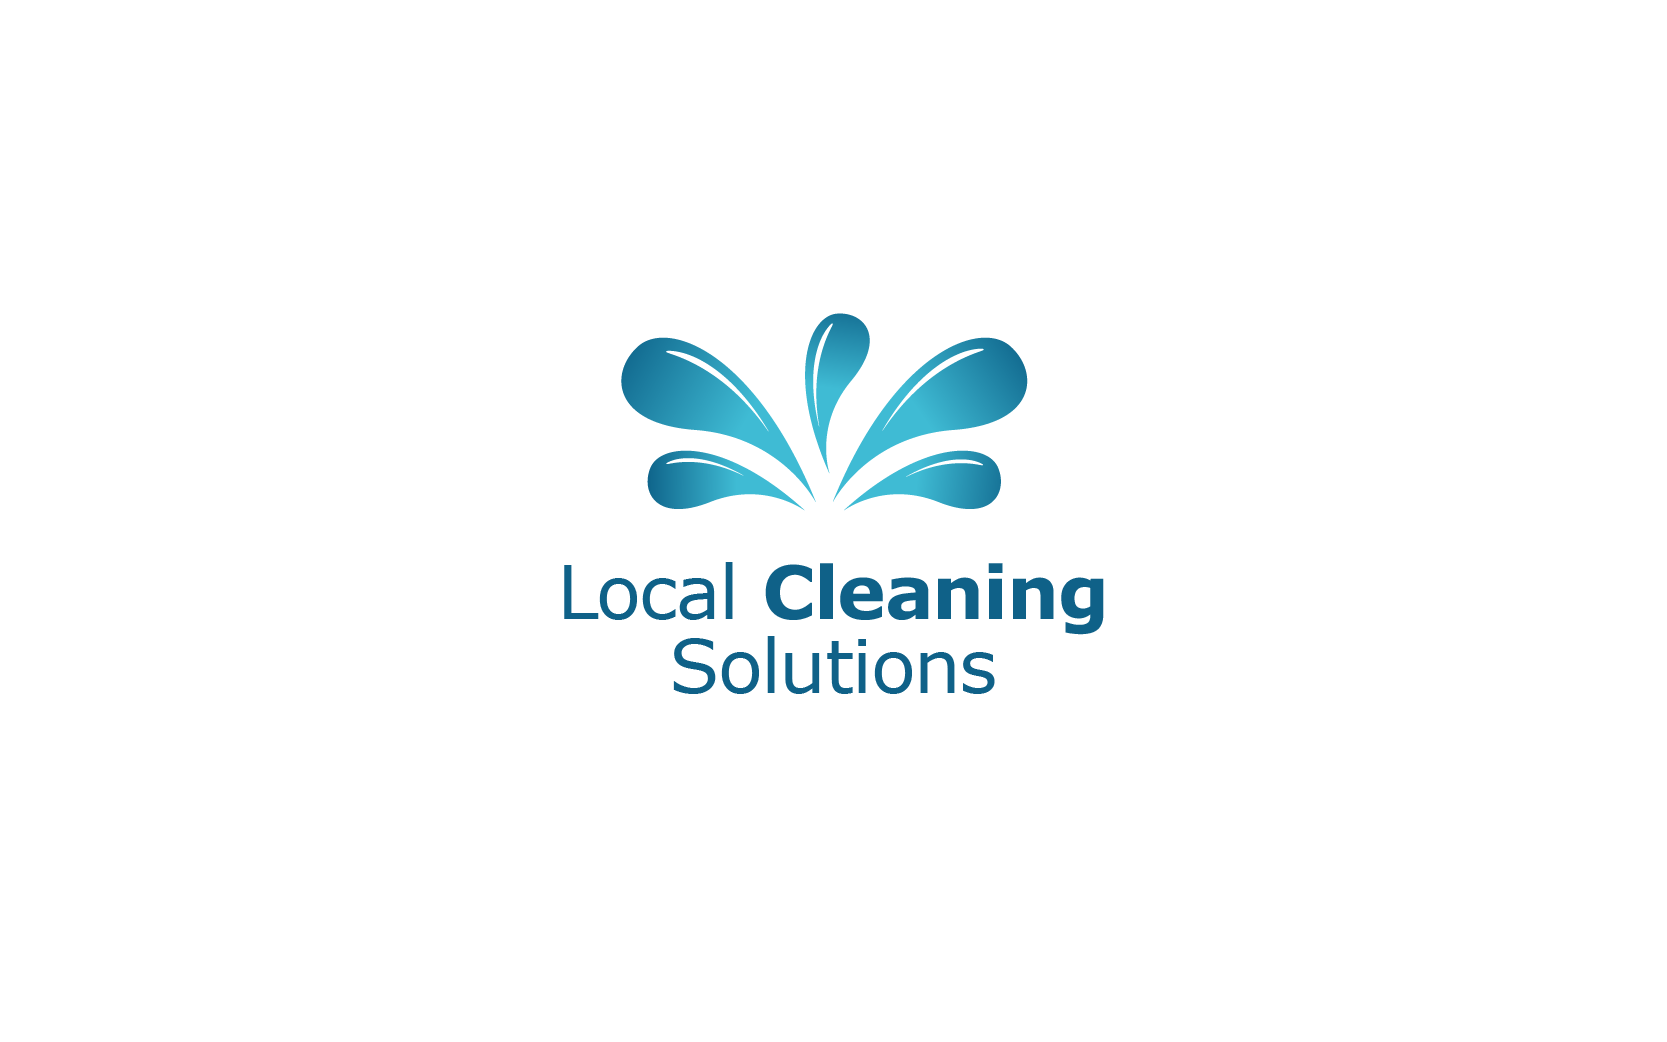 j+design-logo-design-local-cleaning